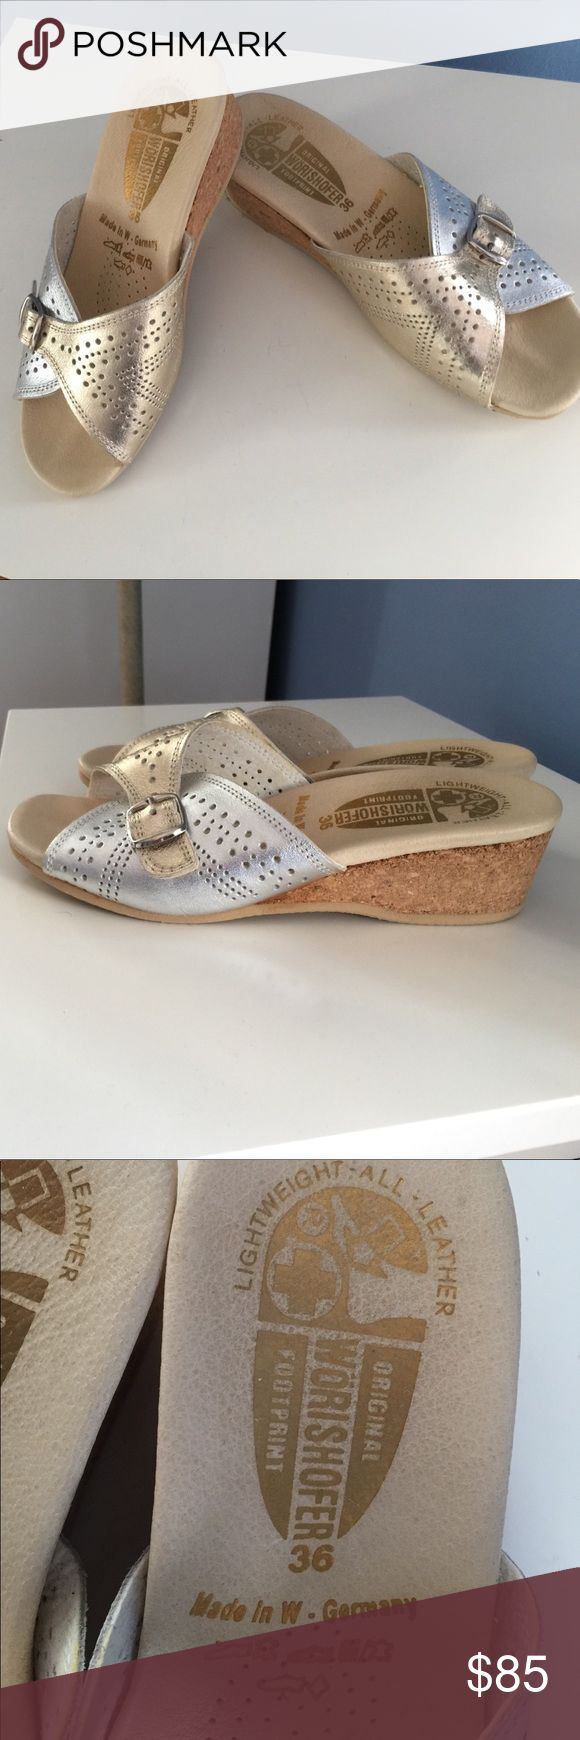 """Made in Germany comfort orthopedic sandals❤️SALE❤️ Extremely comfortable open back sandals , Brand New in original box ! Leather; color is silver & gold . Made in Germany ! Heel is About 1.7 """" high. Worishoffer Shoes Platforms"""